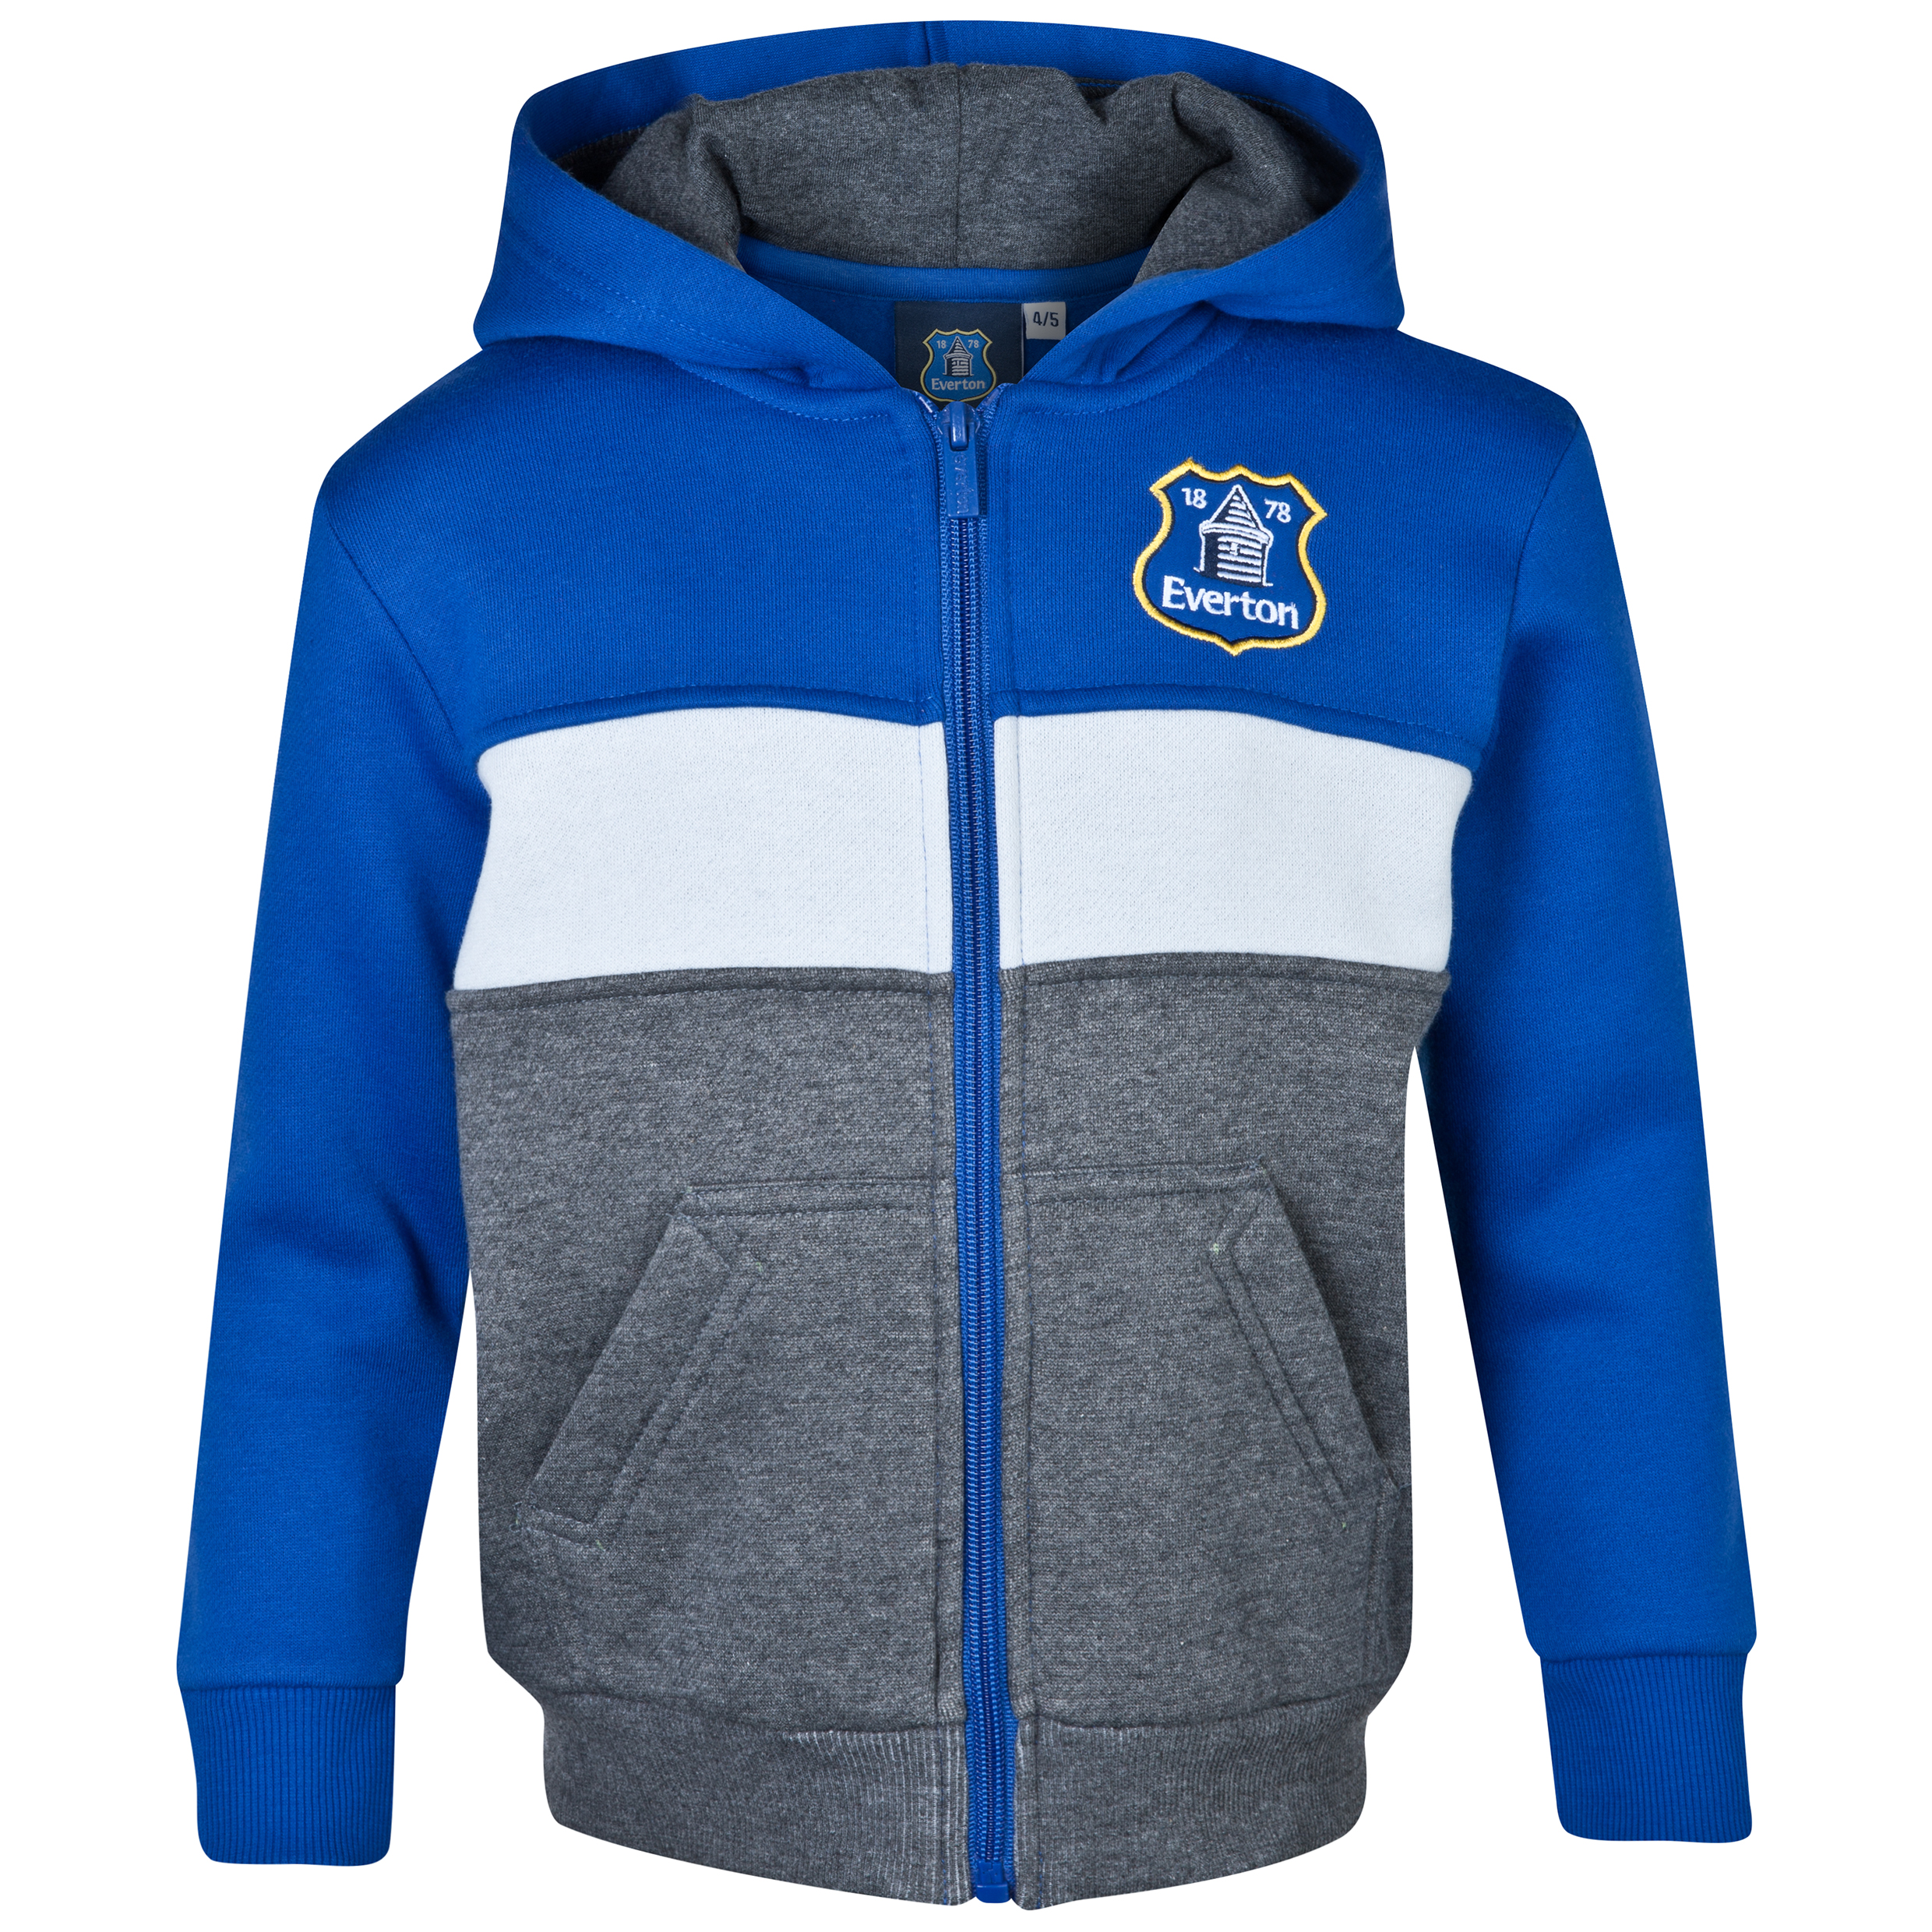 Everton Essentials Blocks Hoody - Infant Boys Royal Blue